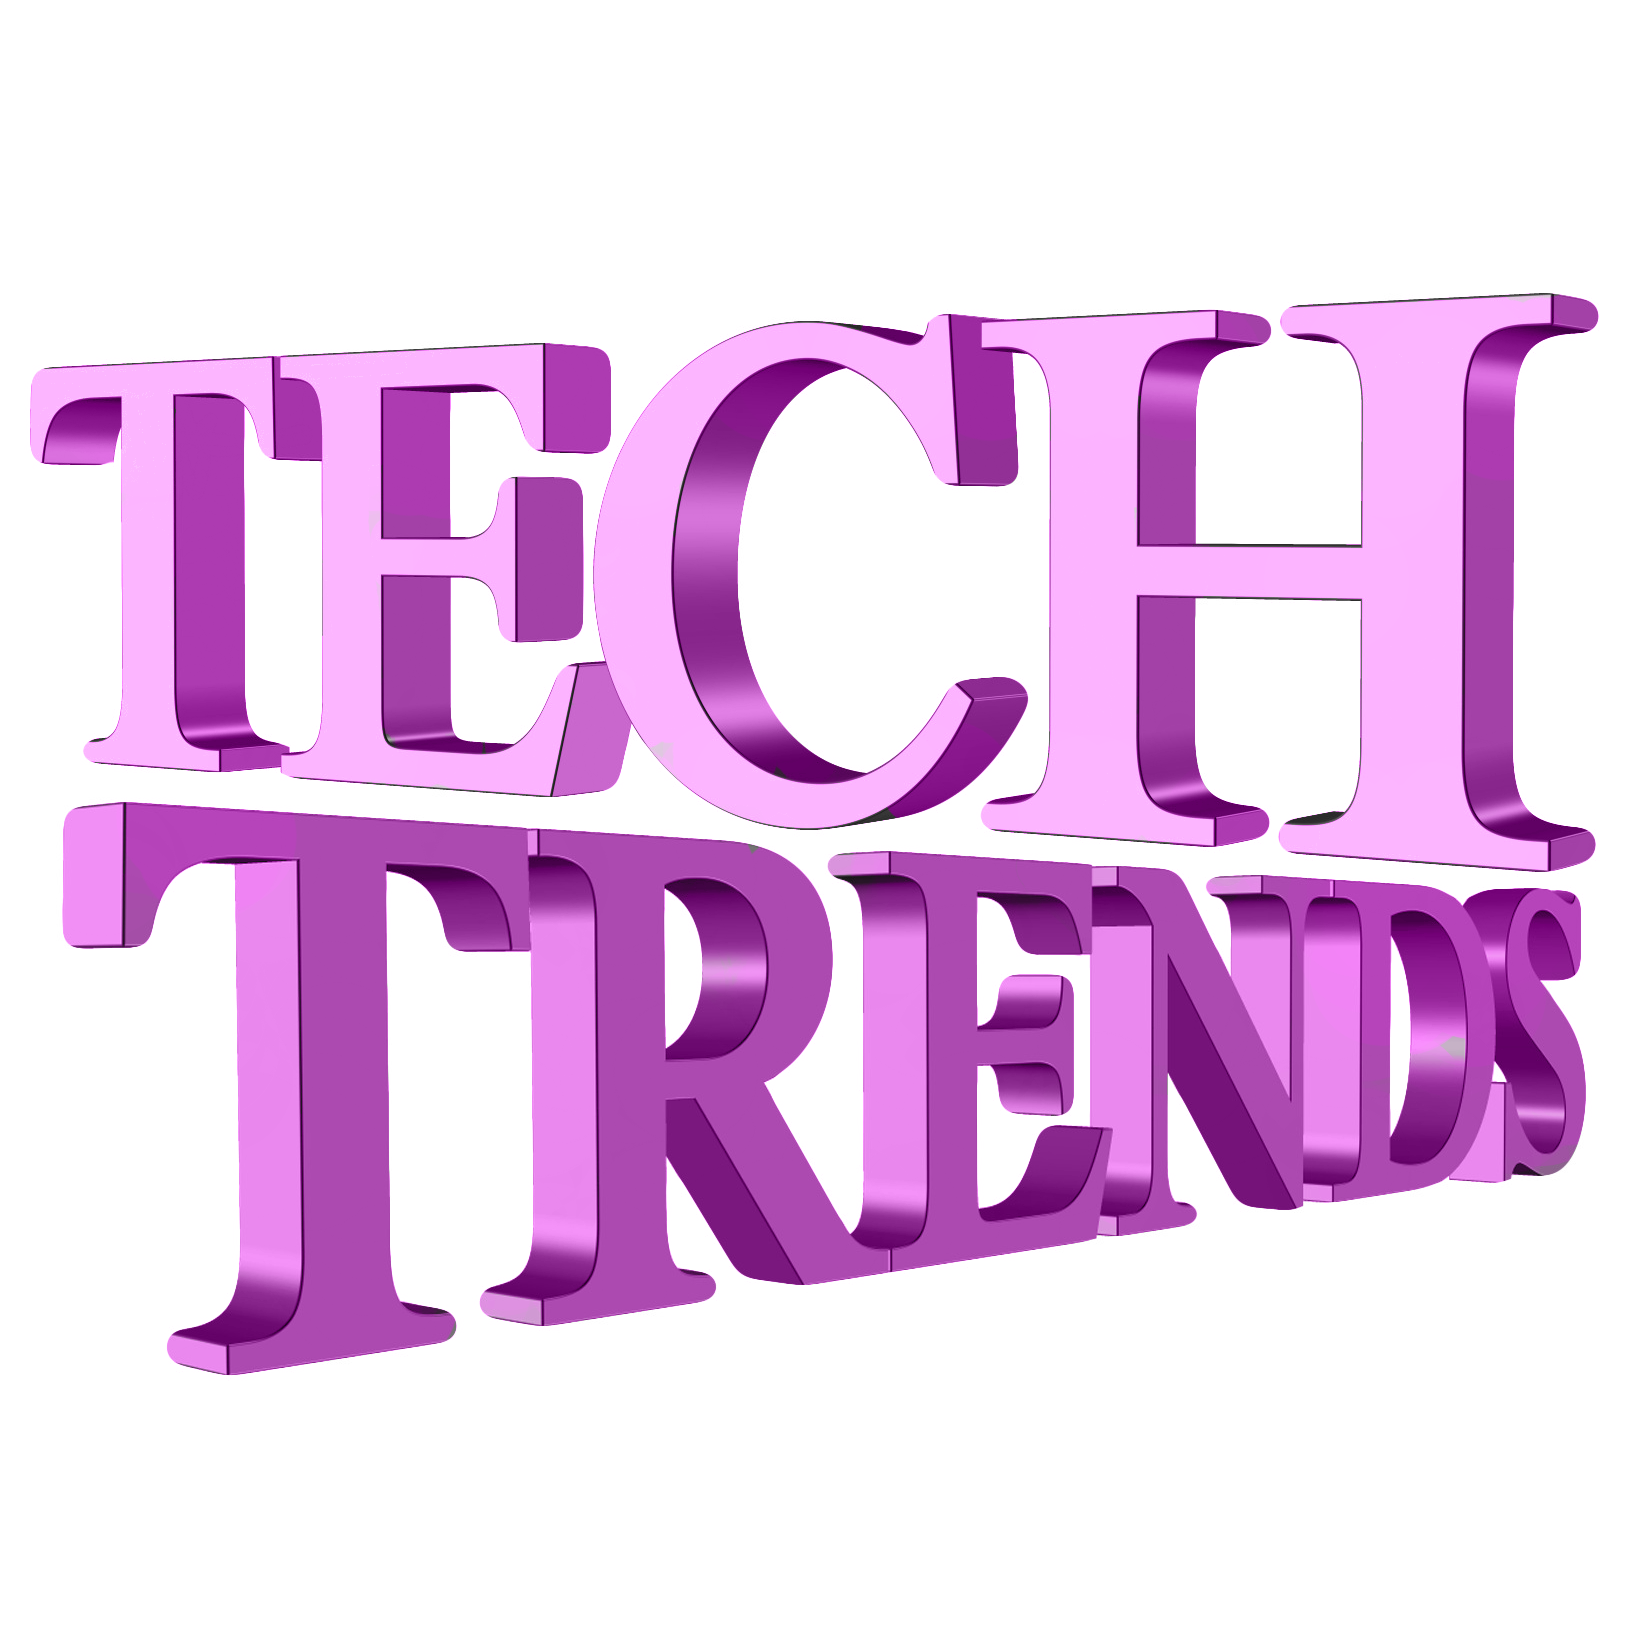 Tech Trends - Web Design Trends